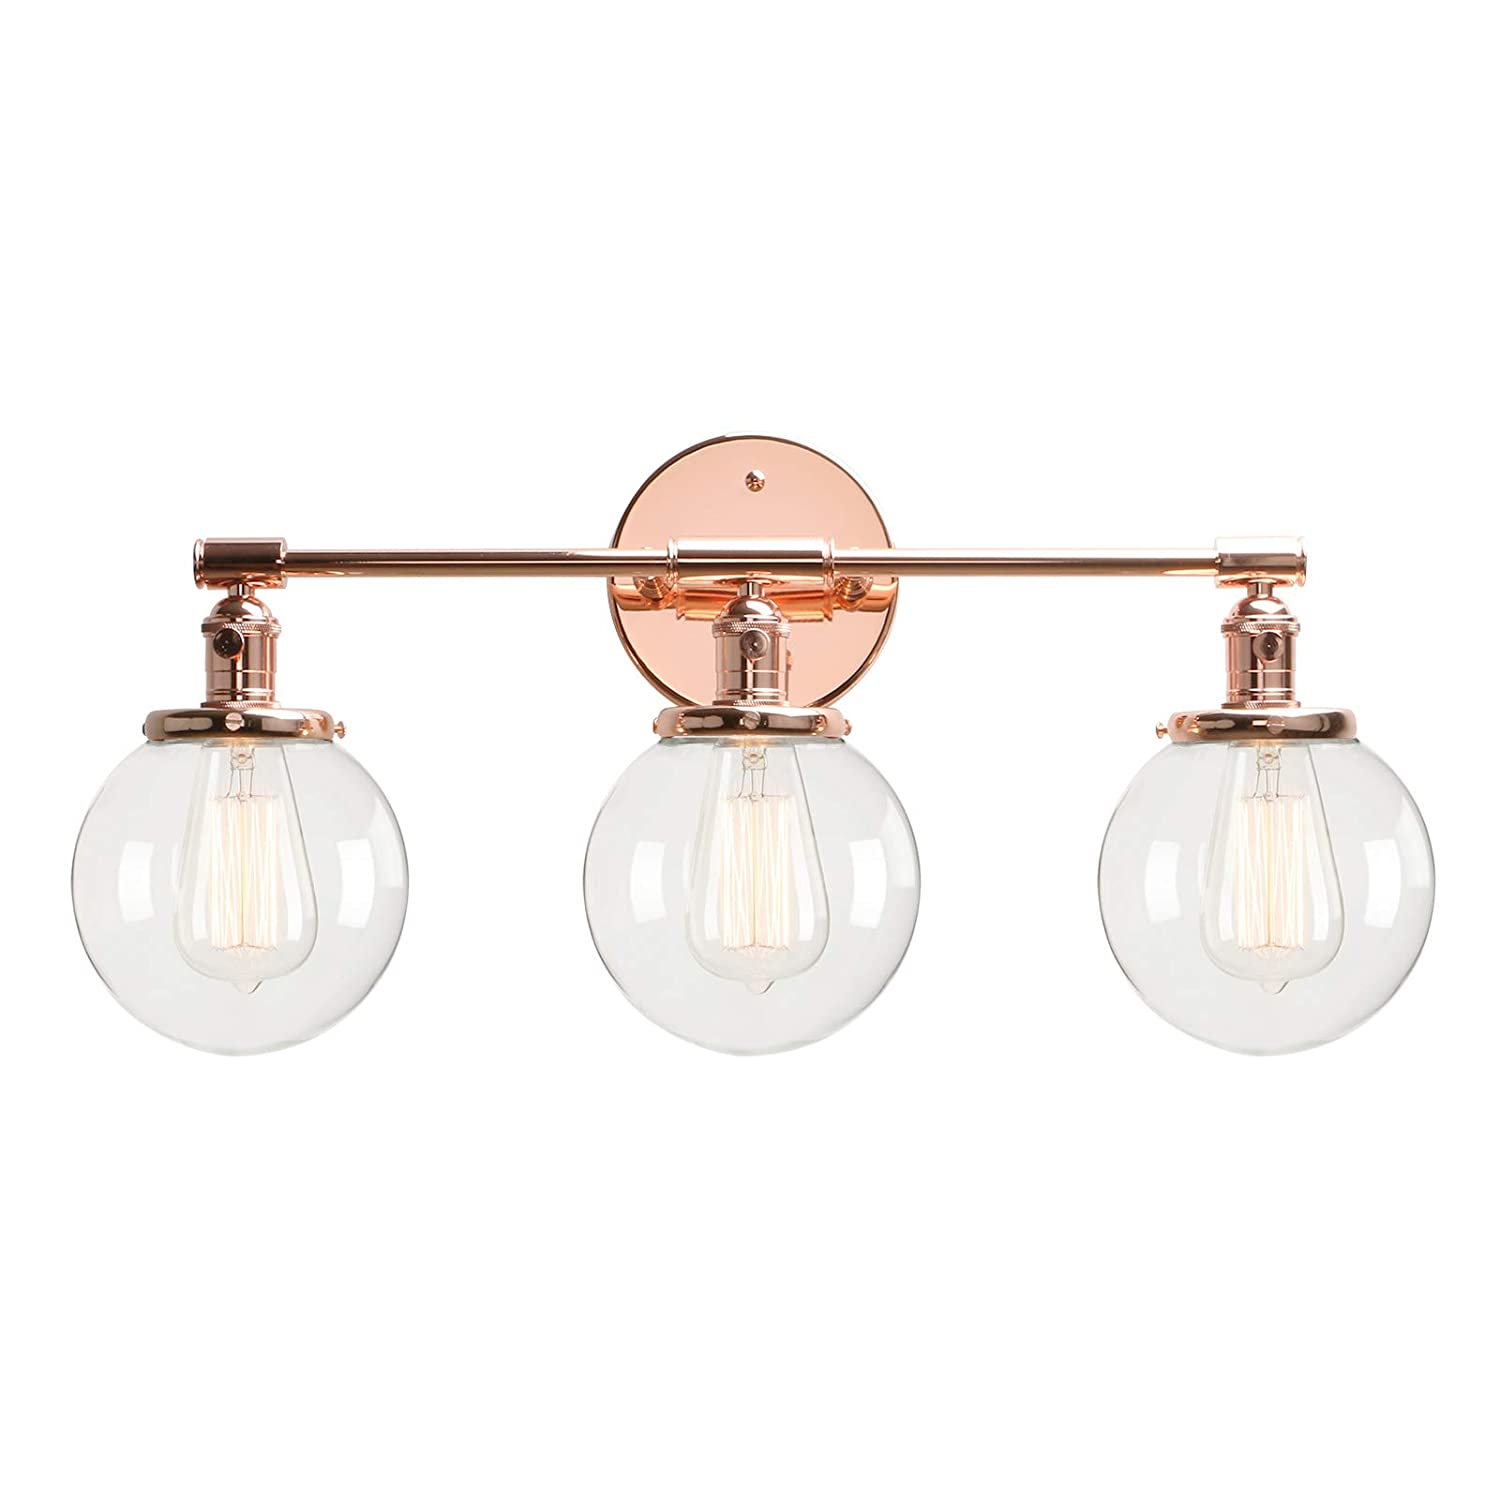 Copper Permo Vintage Industrial Antique Three-Light Wall Sconces with Mini 5.9  Round Clear Glass Globe Shade (Antique)